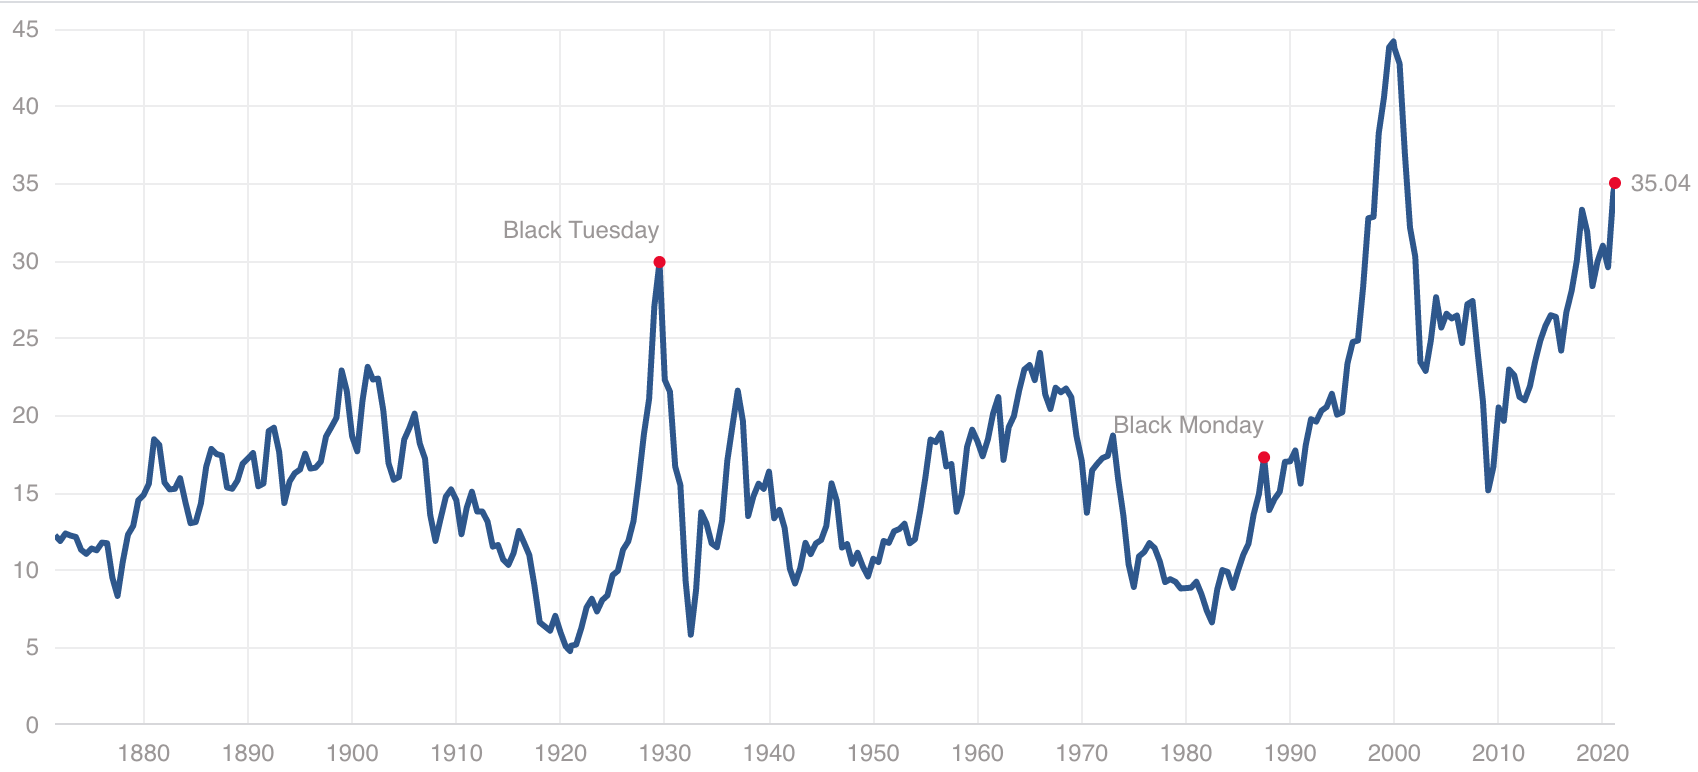 Buying stocks on margin when valuations are super expensive is a bad idea